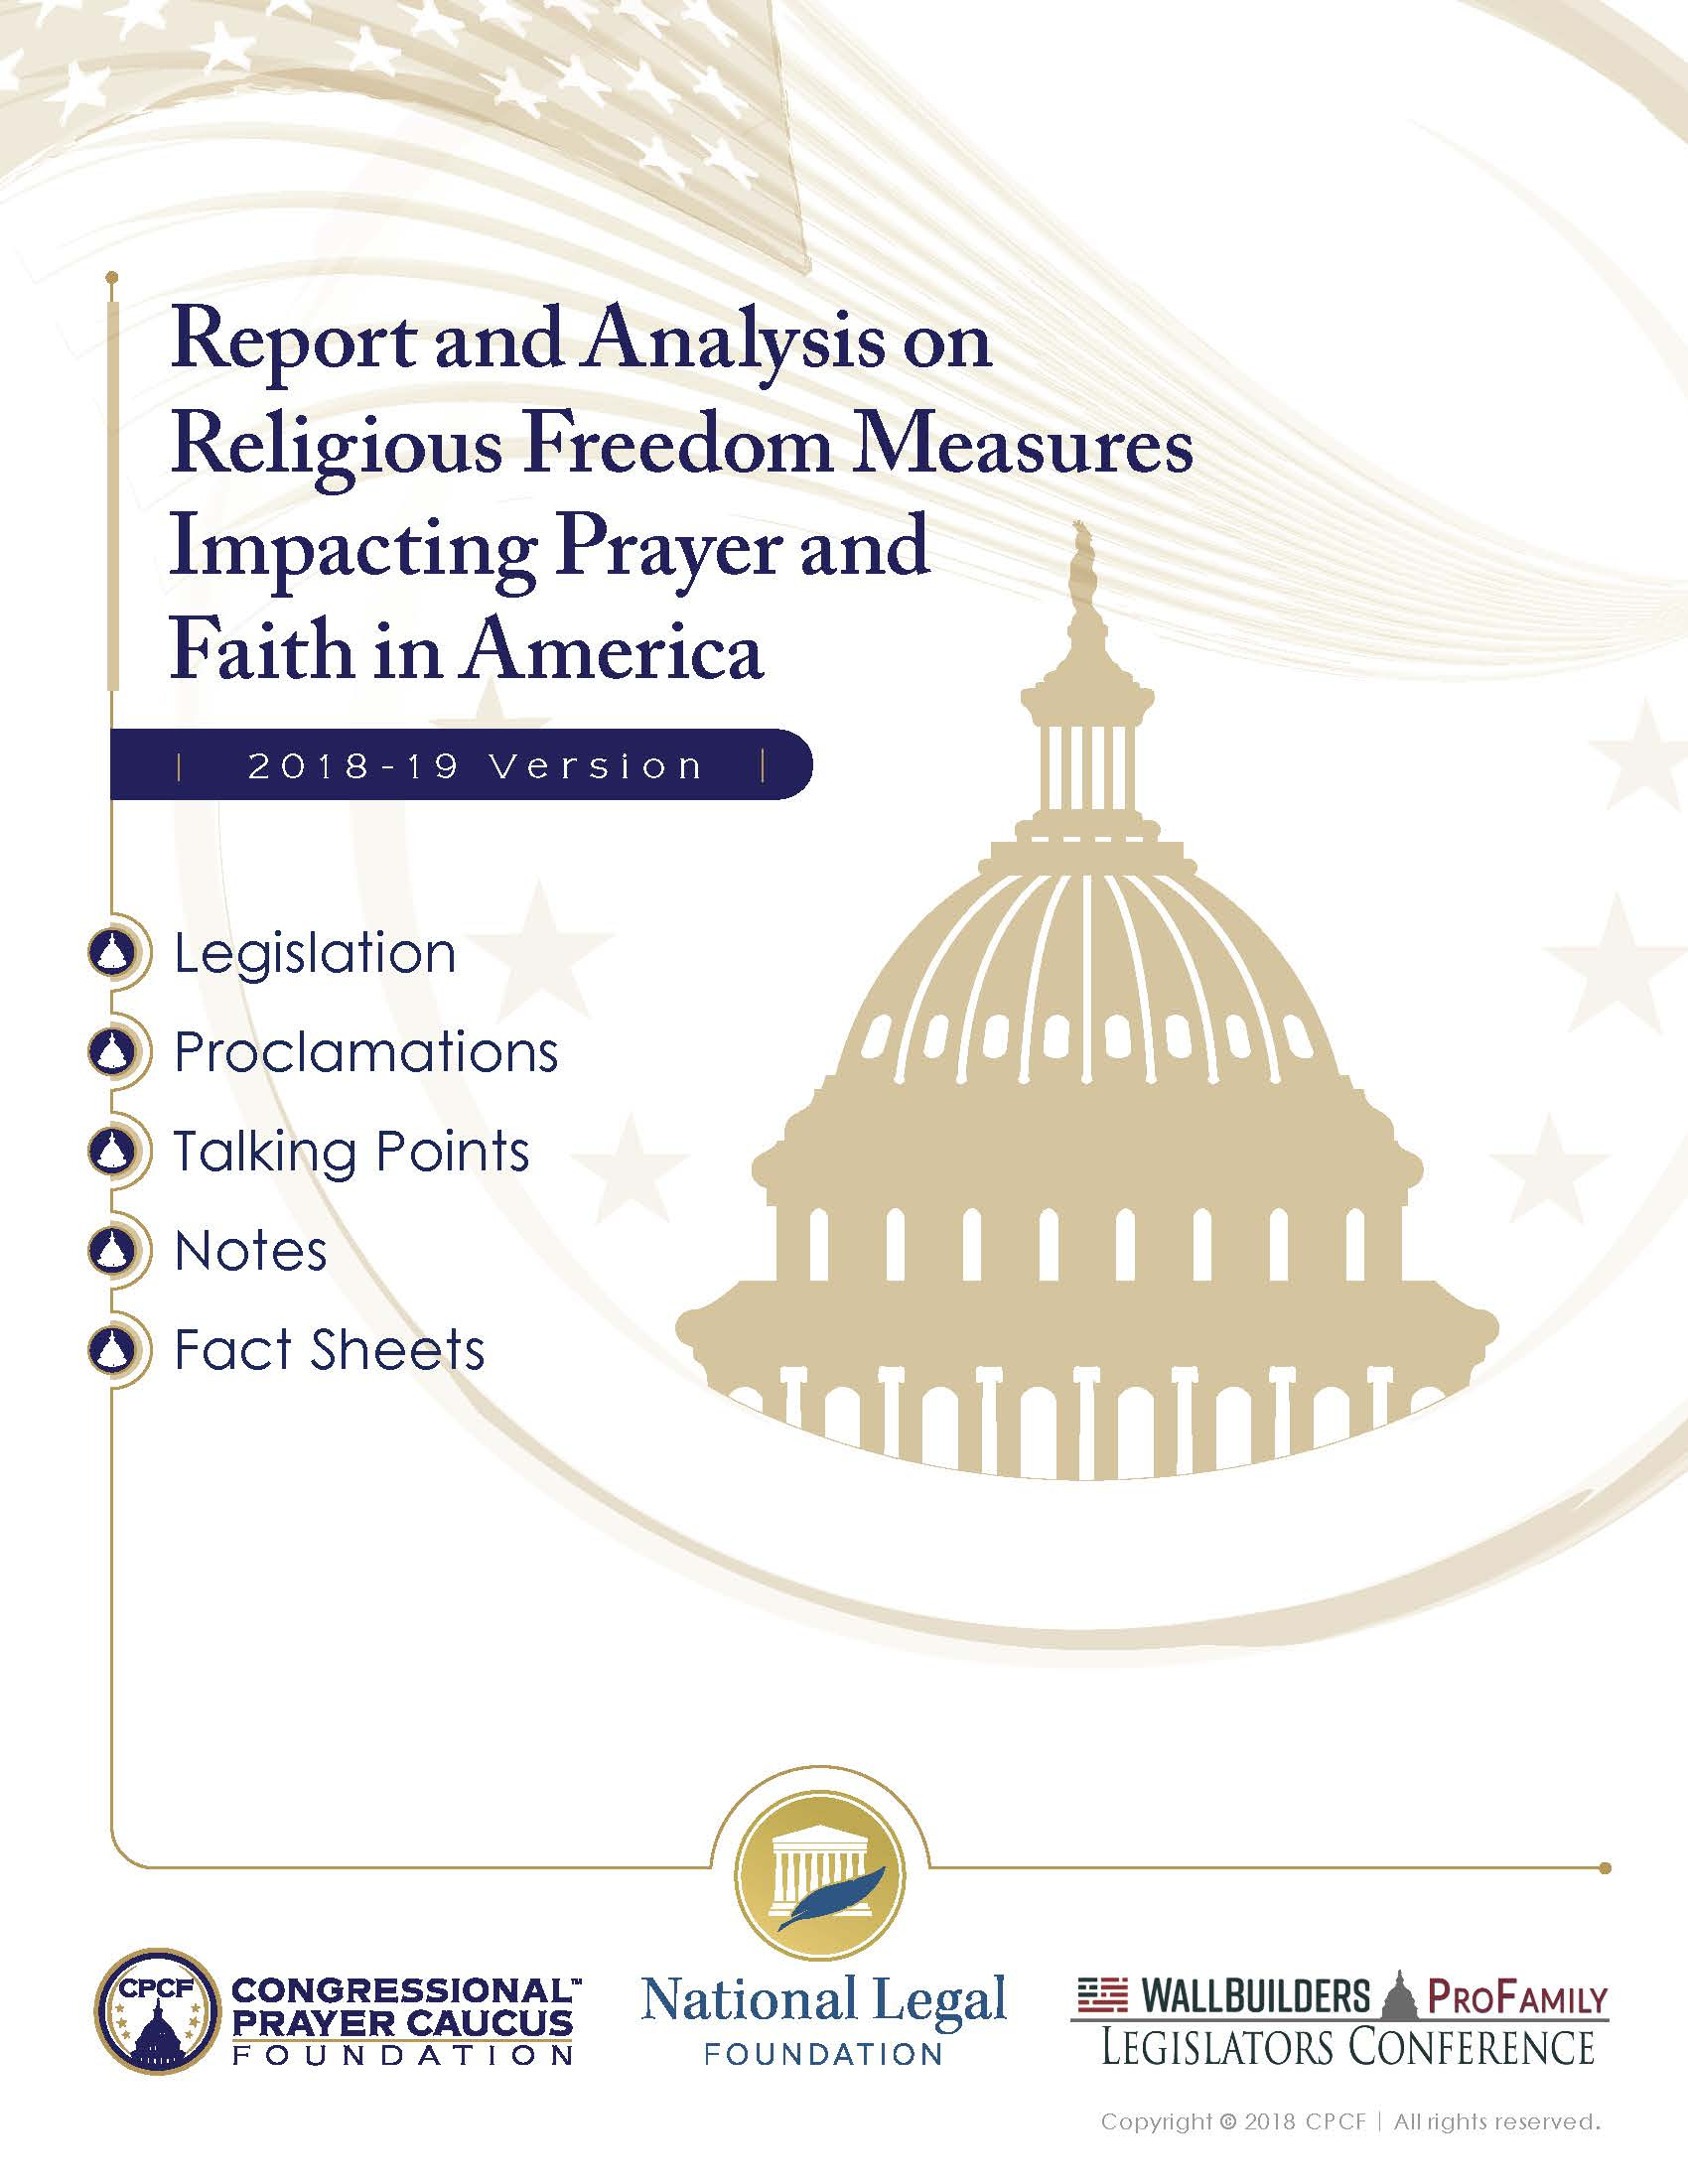 Congressional Prayer Caucus Foundation Archives - National